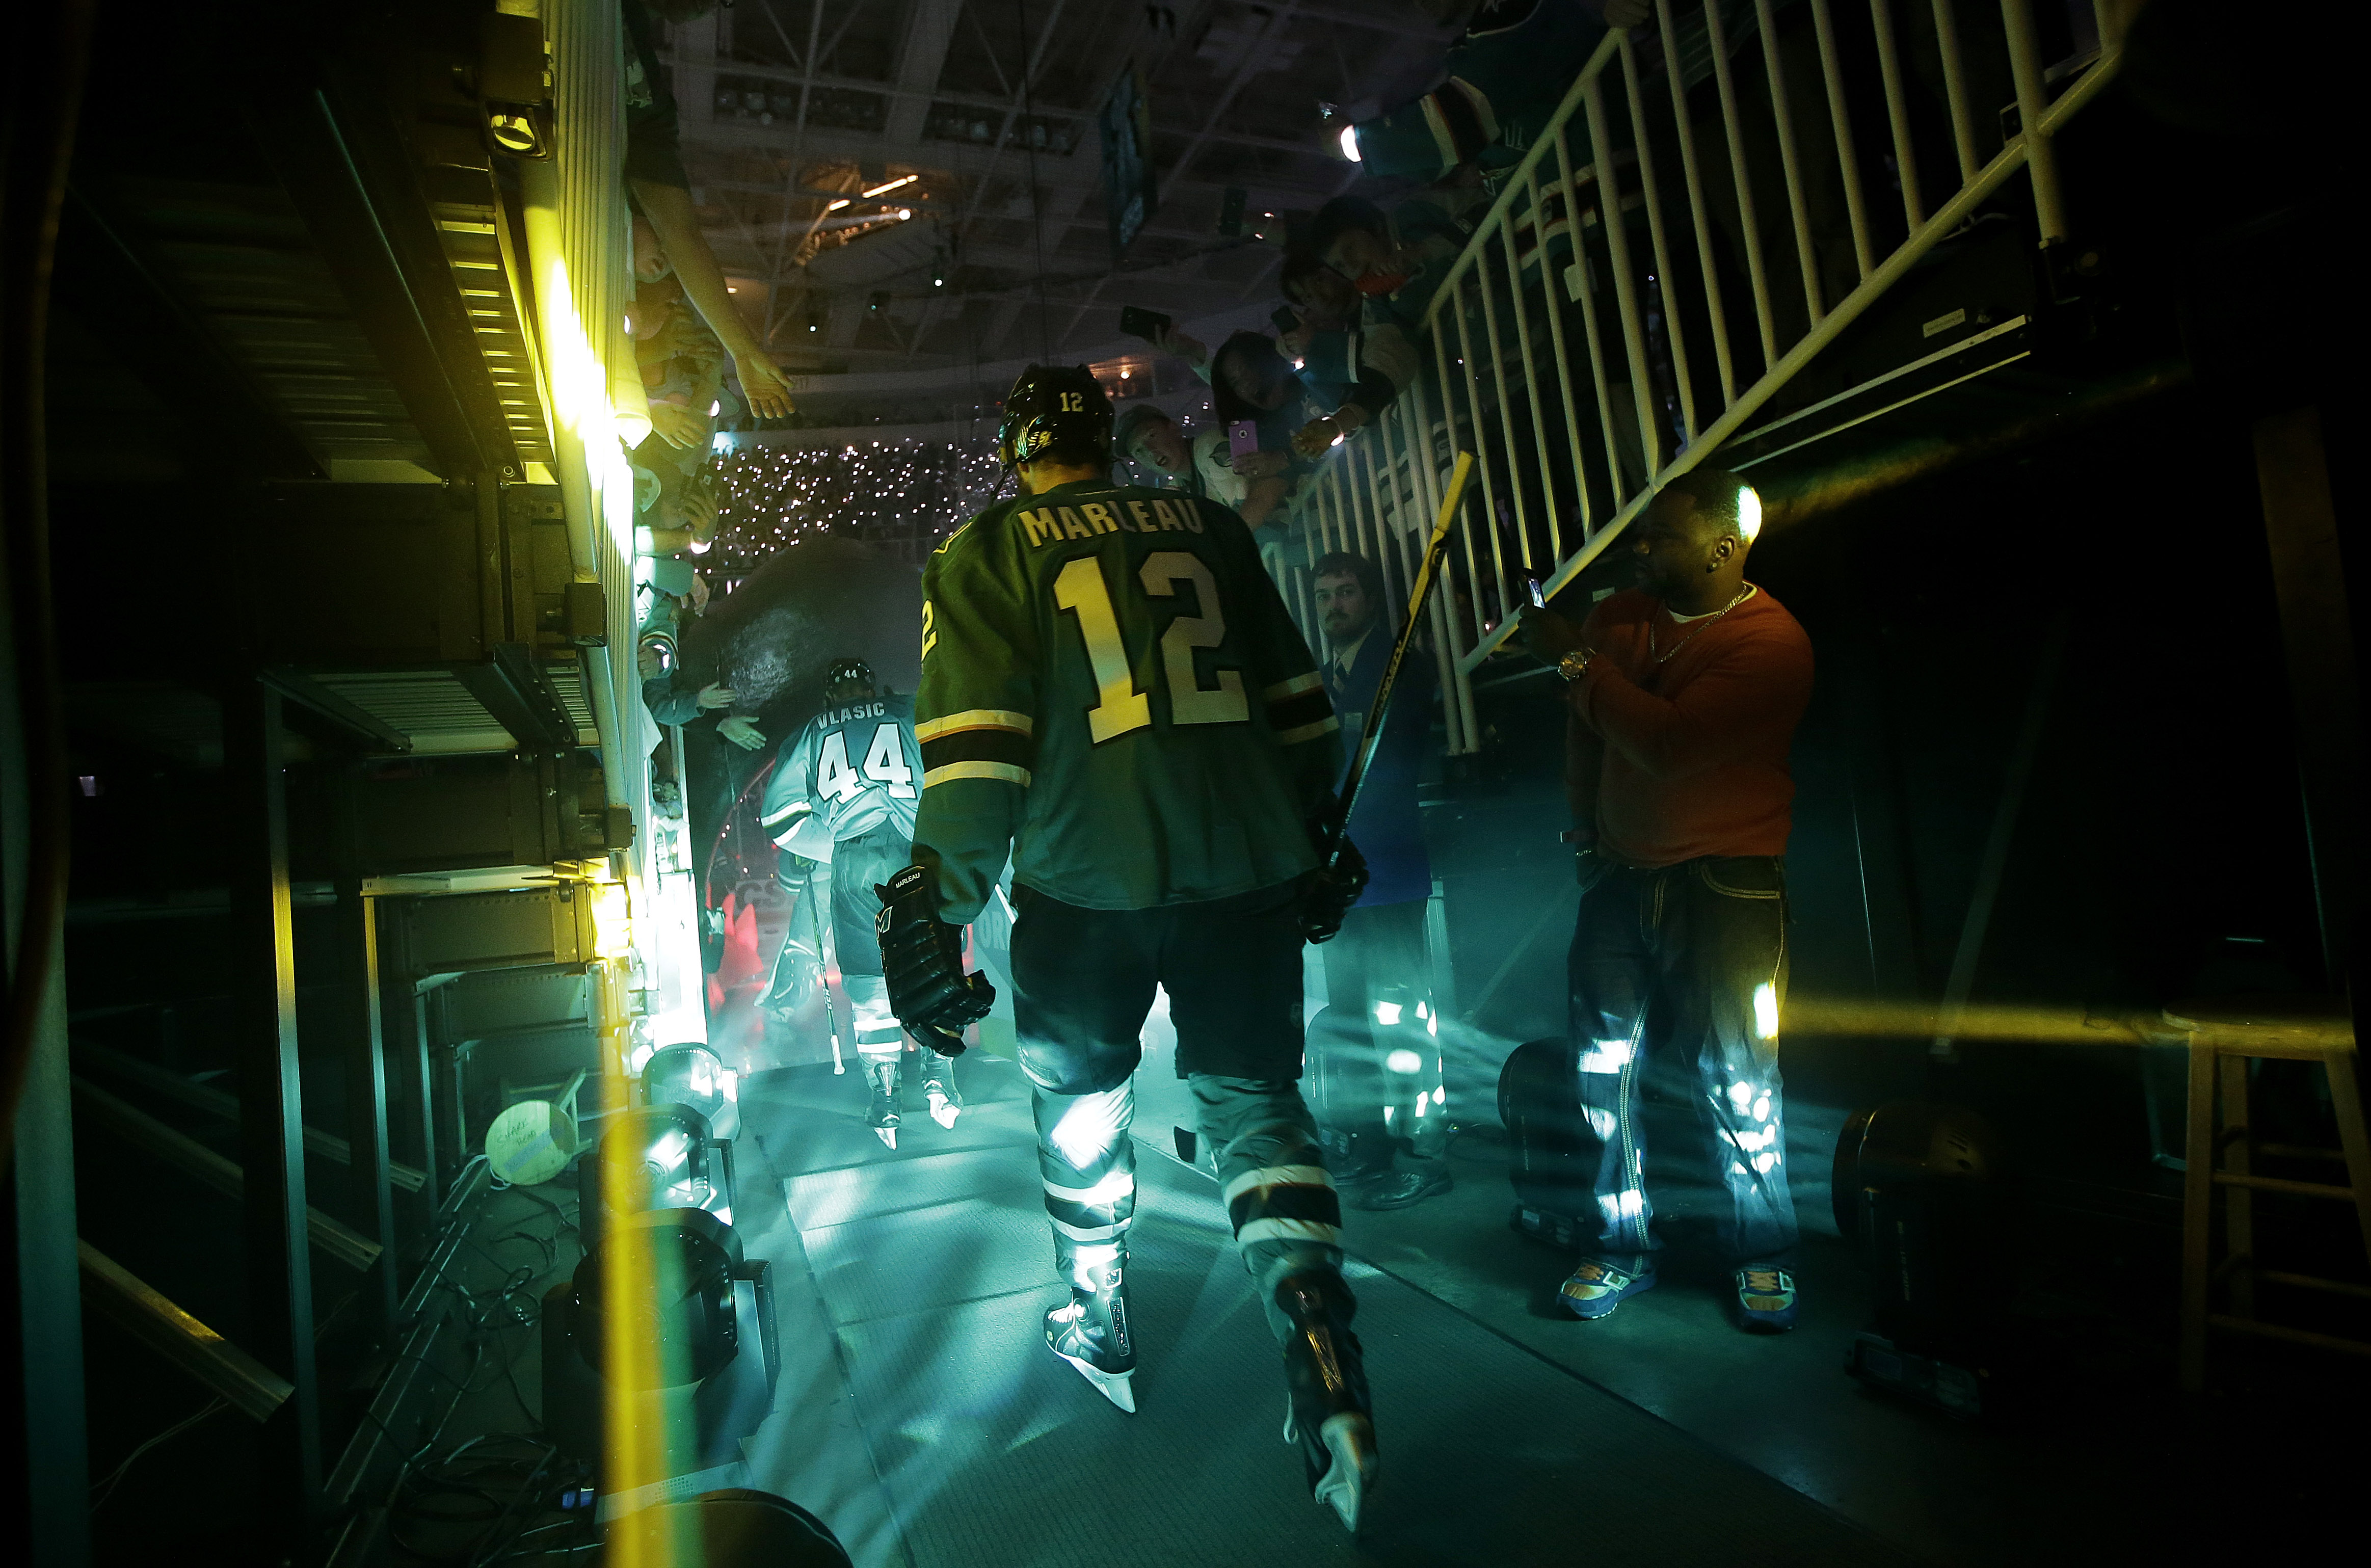 San Jose Sharks center Patrick Marleau (12) walks onto the ice before Game 3 of the NHL hockey Stanley Cup Finals against the Pittsburgh Penguins in San Jose, Calif., Saturday, June 4, 2016. (AP Photo/Marcio Jose Sanchez)